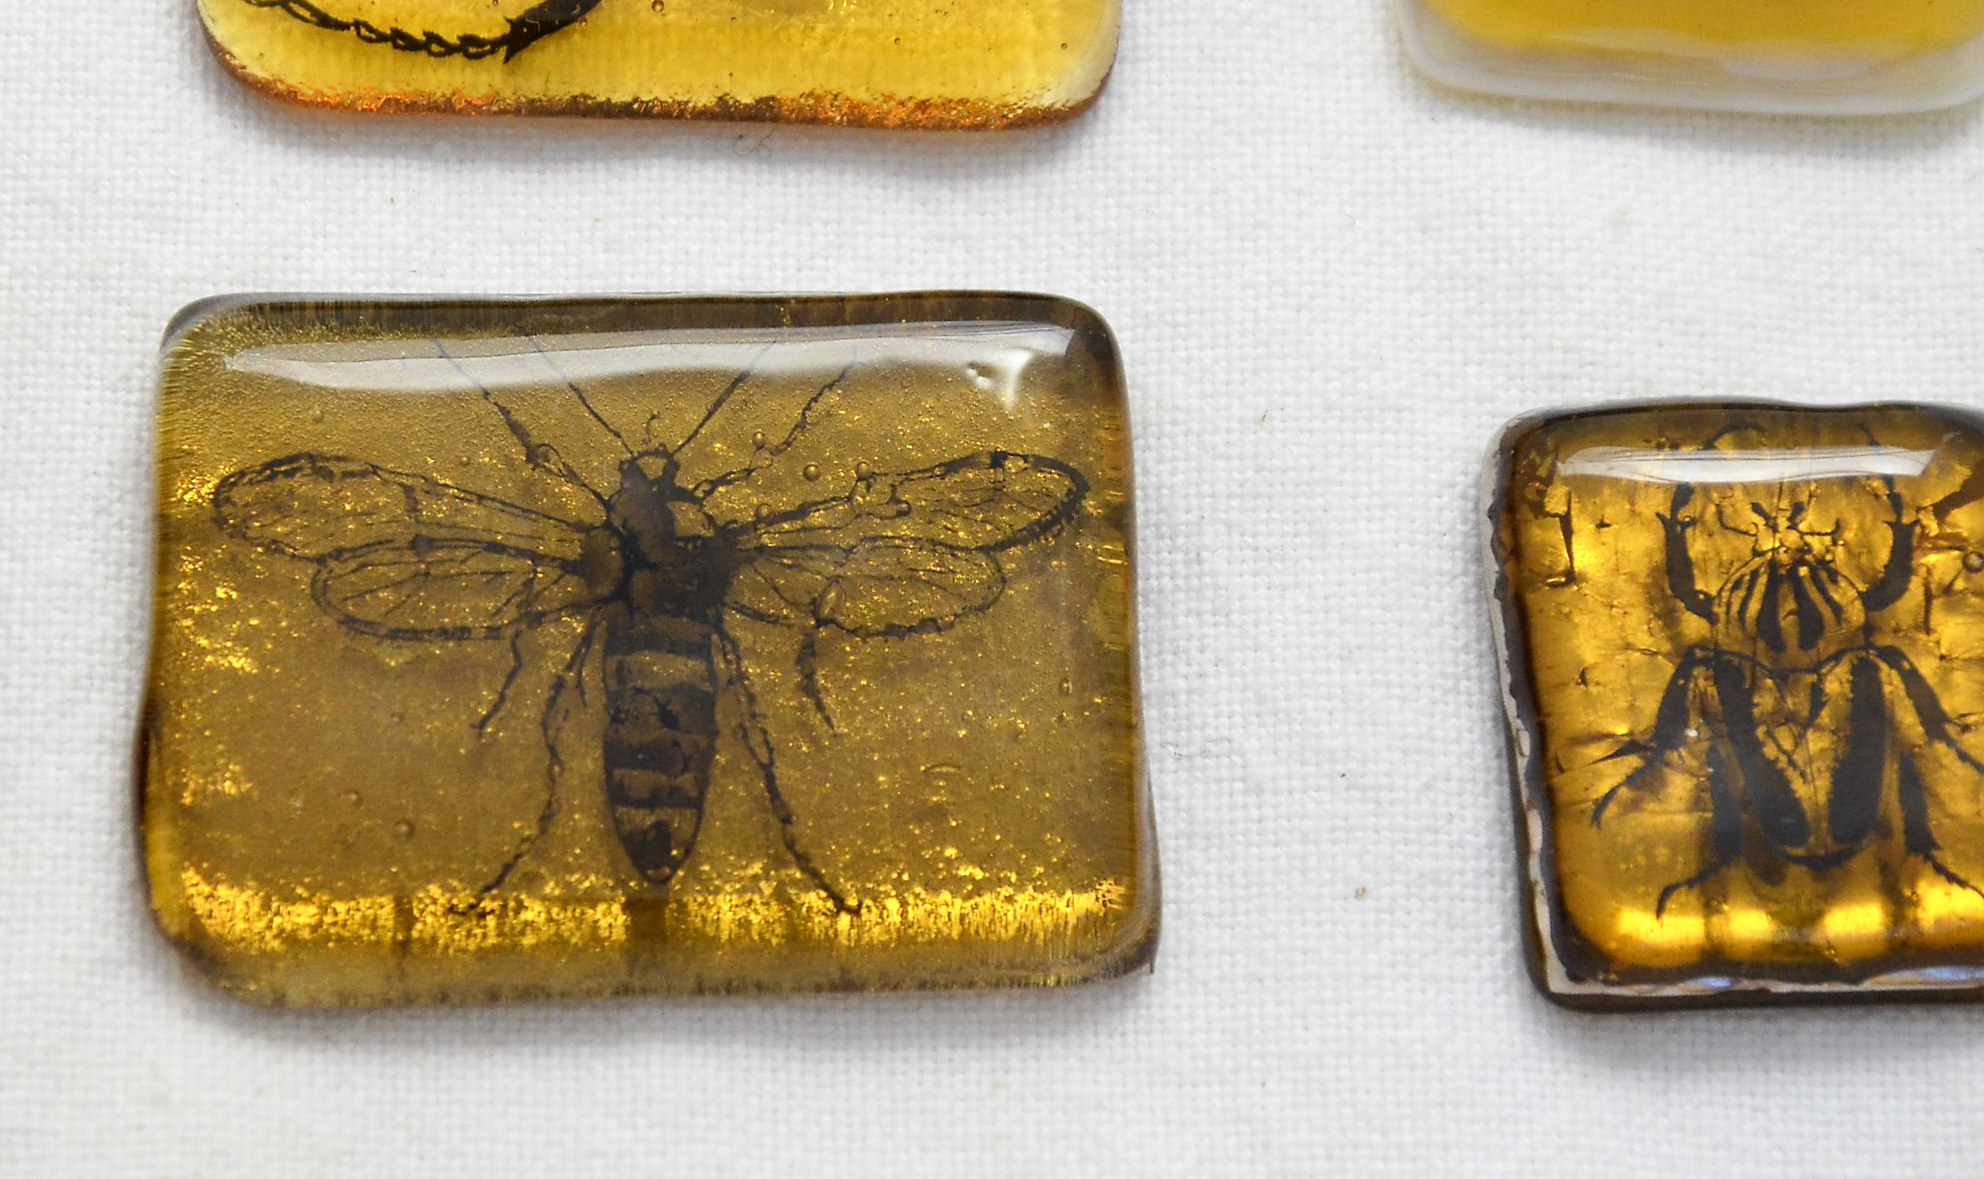 Test 8 on the left.   The platinum seems to have burned away a bit during the final fuse firing, whereas the platinum in test 6 on the right retains its full character and color.  Also note the interesting image distortion in the black insect decal on the left, which was sandwiched between the 2 glass layers .  The insect on the right sat atop the glass during final fuse and thus exhibits no distortion.